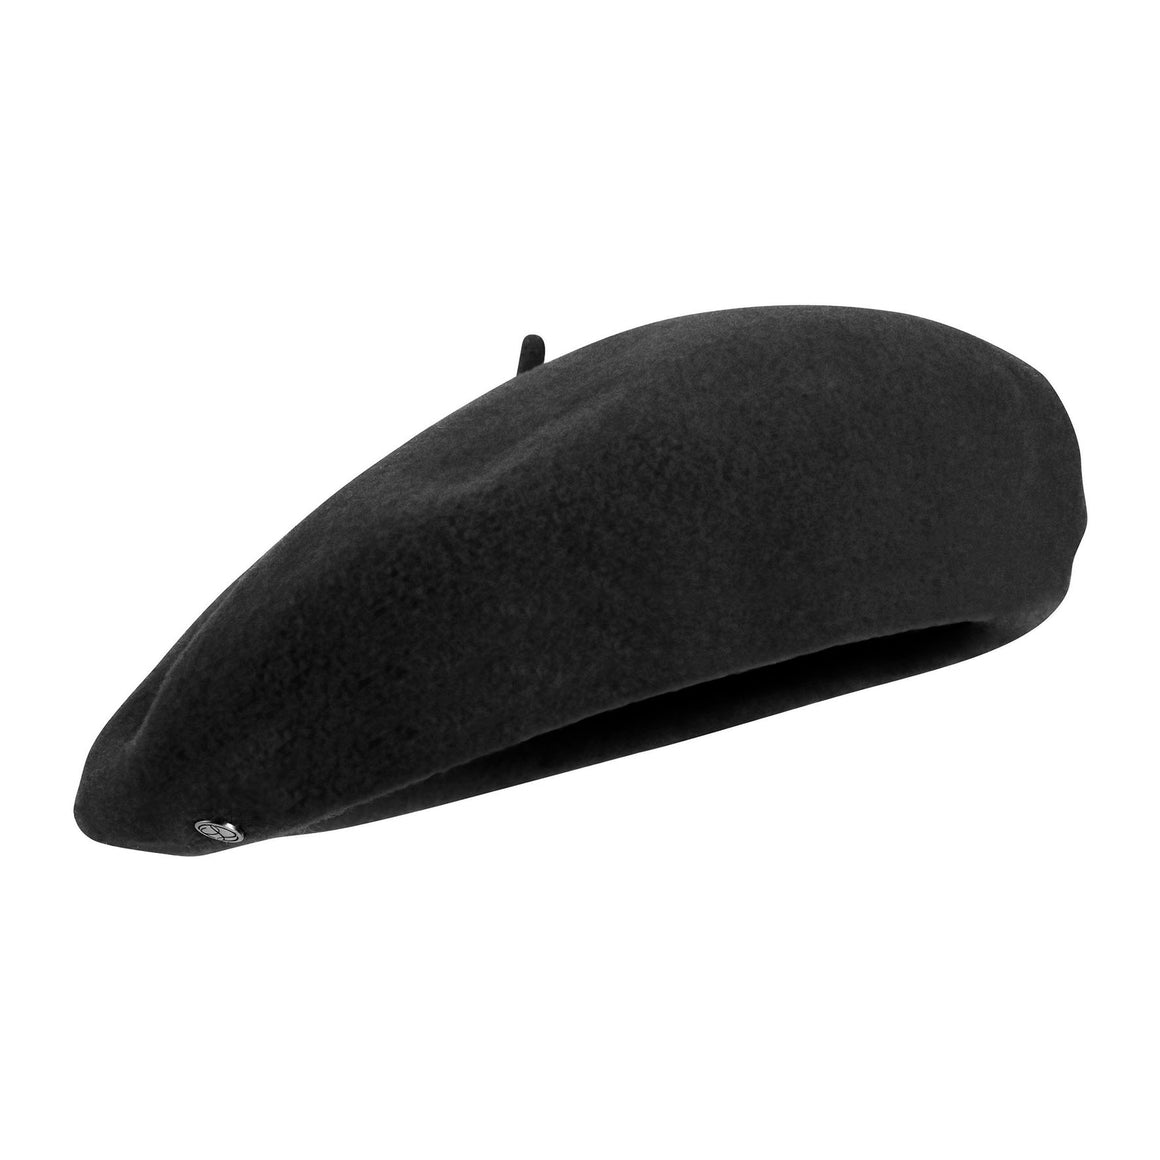 Heritage by Laulhere | Authentic French Beret | Merino Wool Beret | buy now at The Cashmere Choice London